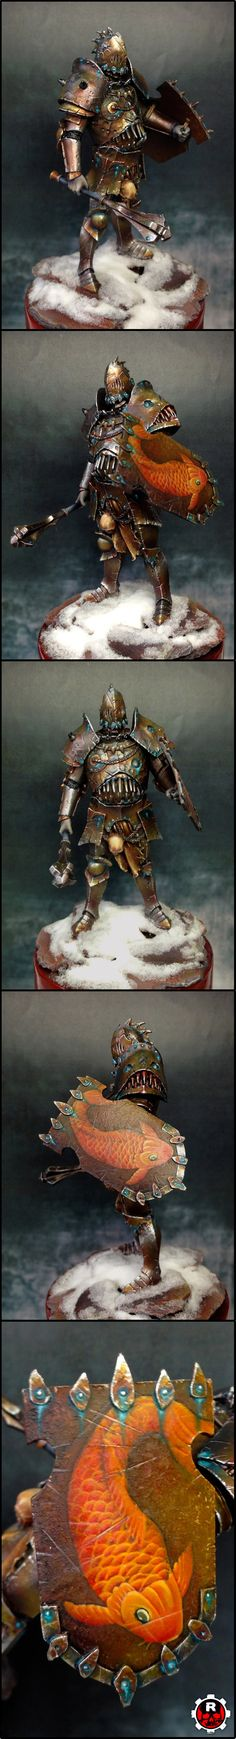 The Internet's largest gallery of painted miniatures, with a large repository of how-to articles on miniature painting Warhammer Models, Warhammer Fantasy, Fantasy Paintings, Mini Paintings, Fantasy Model, Fantasy Art, Game Character Design, Character Art, Painting Competition